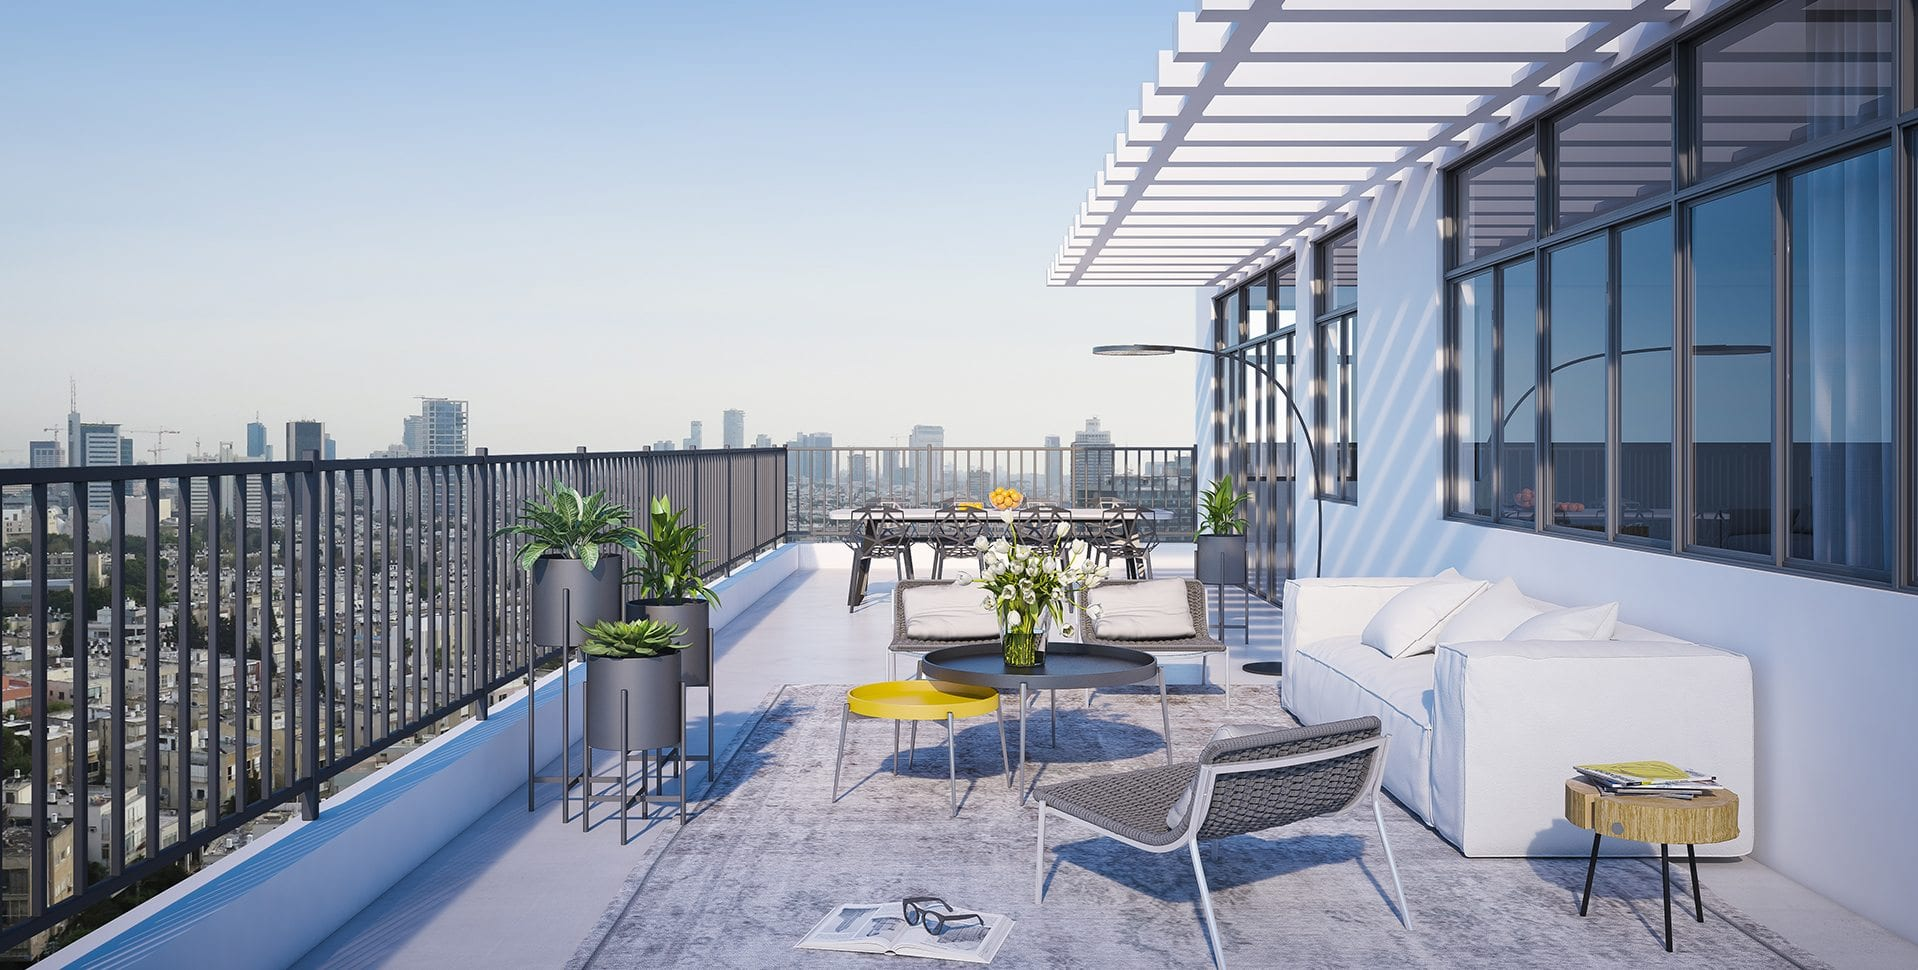 Maayan-Golan_Architectural-Visualization_ penthouse-balcony_exterior-visualization_ Dizengoff-189-tel-aviv_08